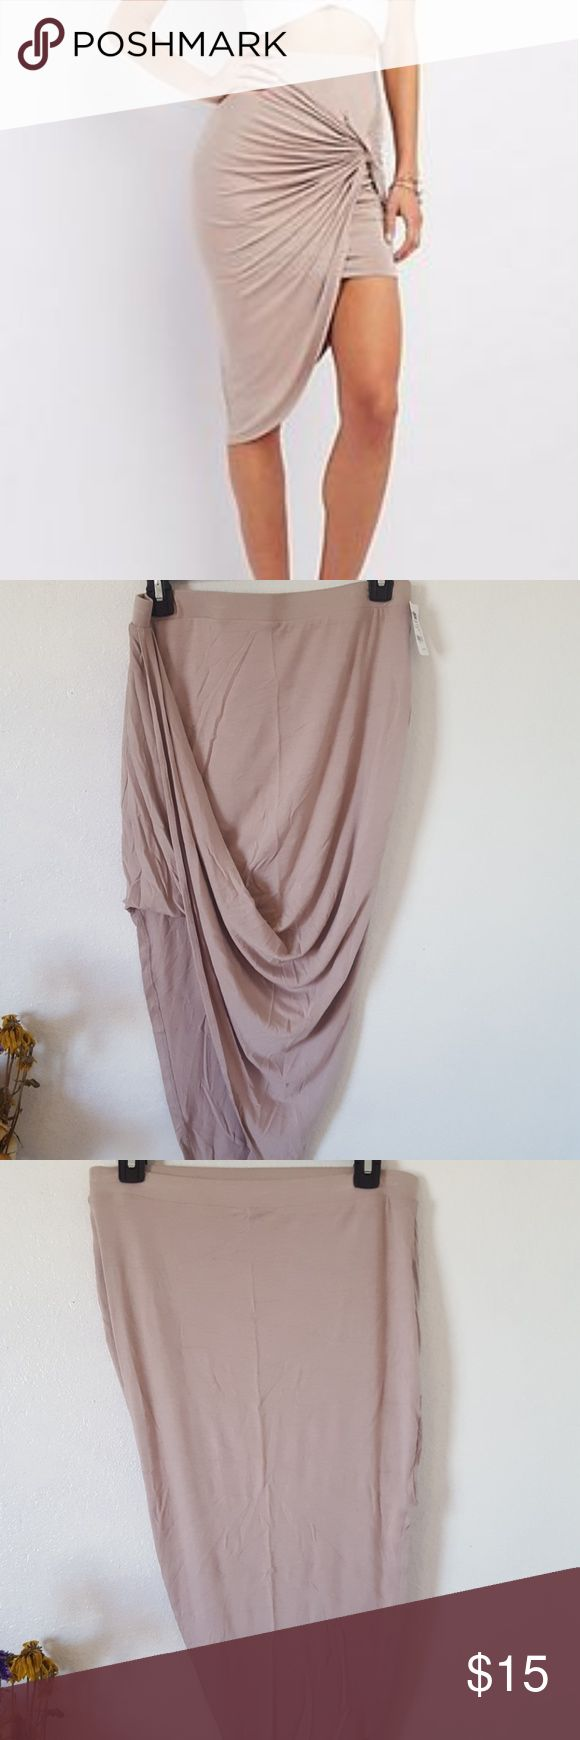 Skirt Similar to first picture, new, it has a pretty pinky nude mauve color, a little wrinkly since it's been in my closet, 95% rayon, 5% spandex Charlotte Russe Skirts